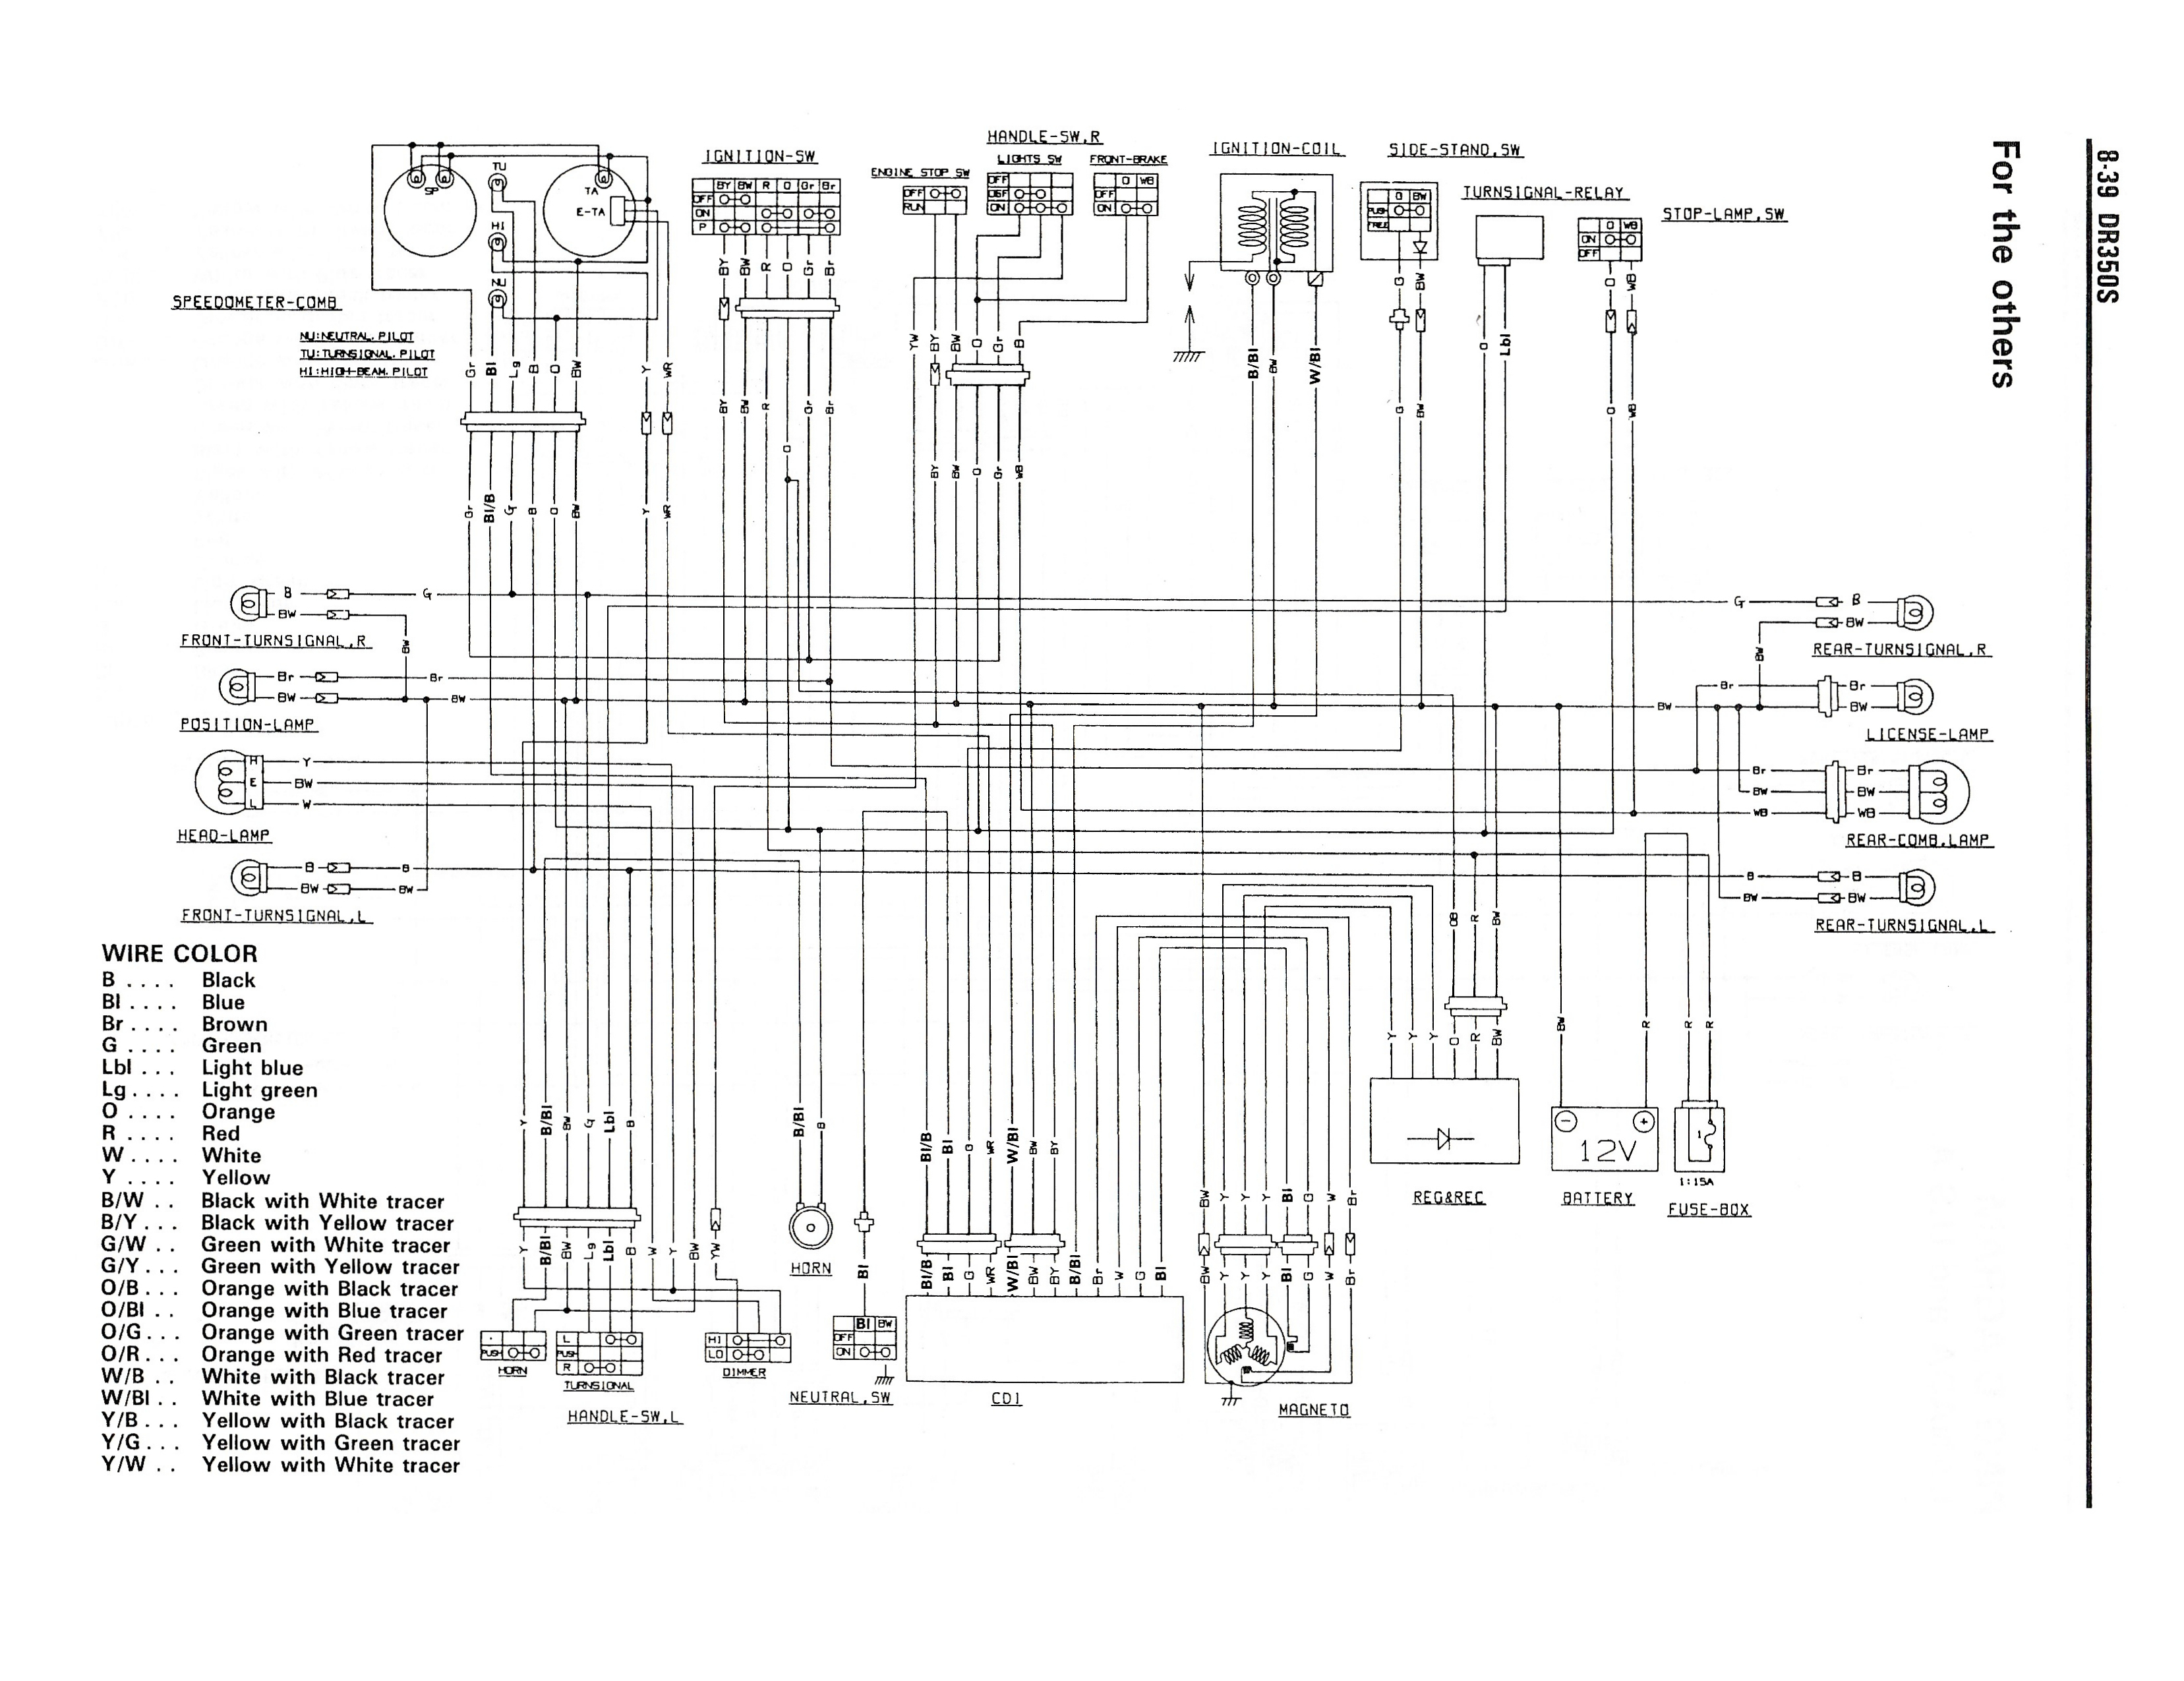 Dr350 Wiring Diagram Schematics Diagrams Rf900 For The S 1990 And Later Models Other Rh Thisoldtractor Com 1991 Suzuki 1998